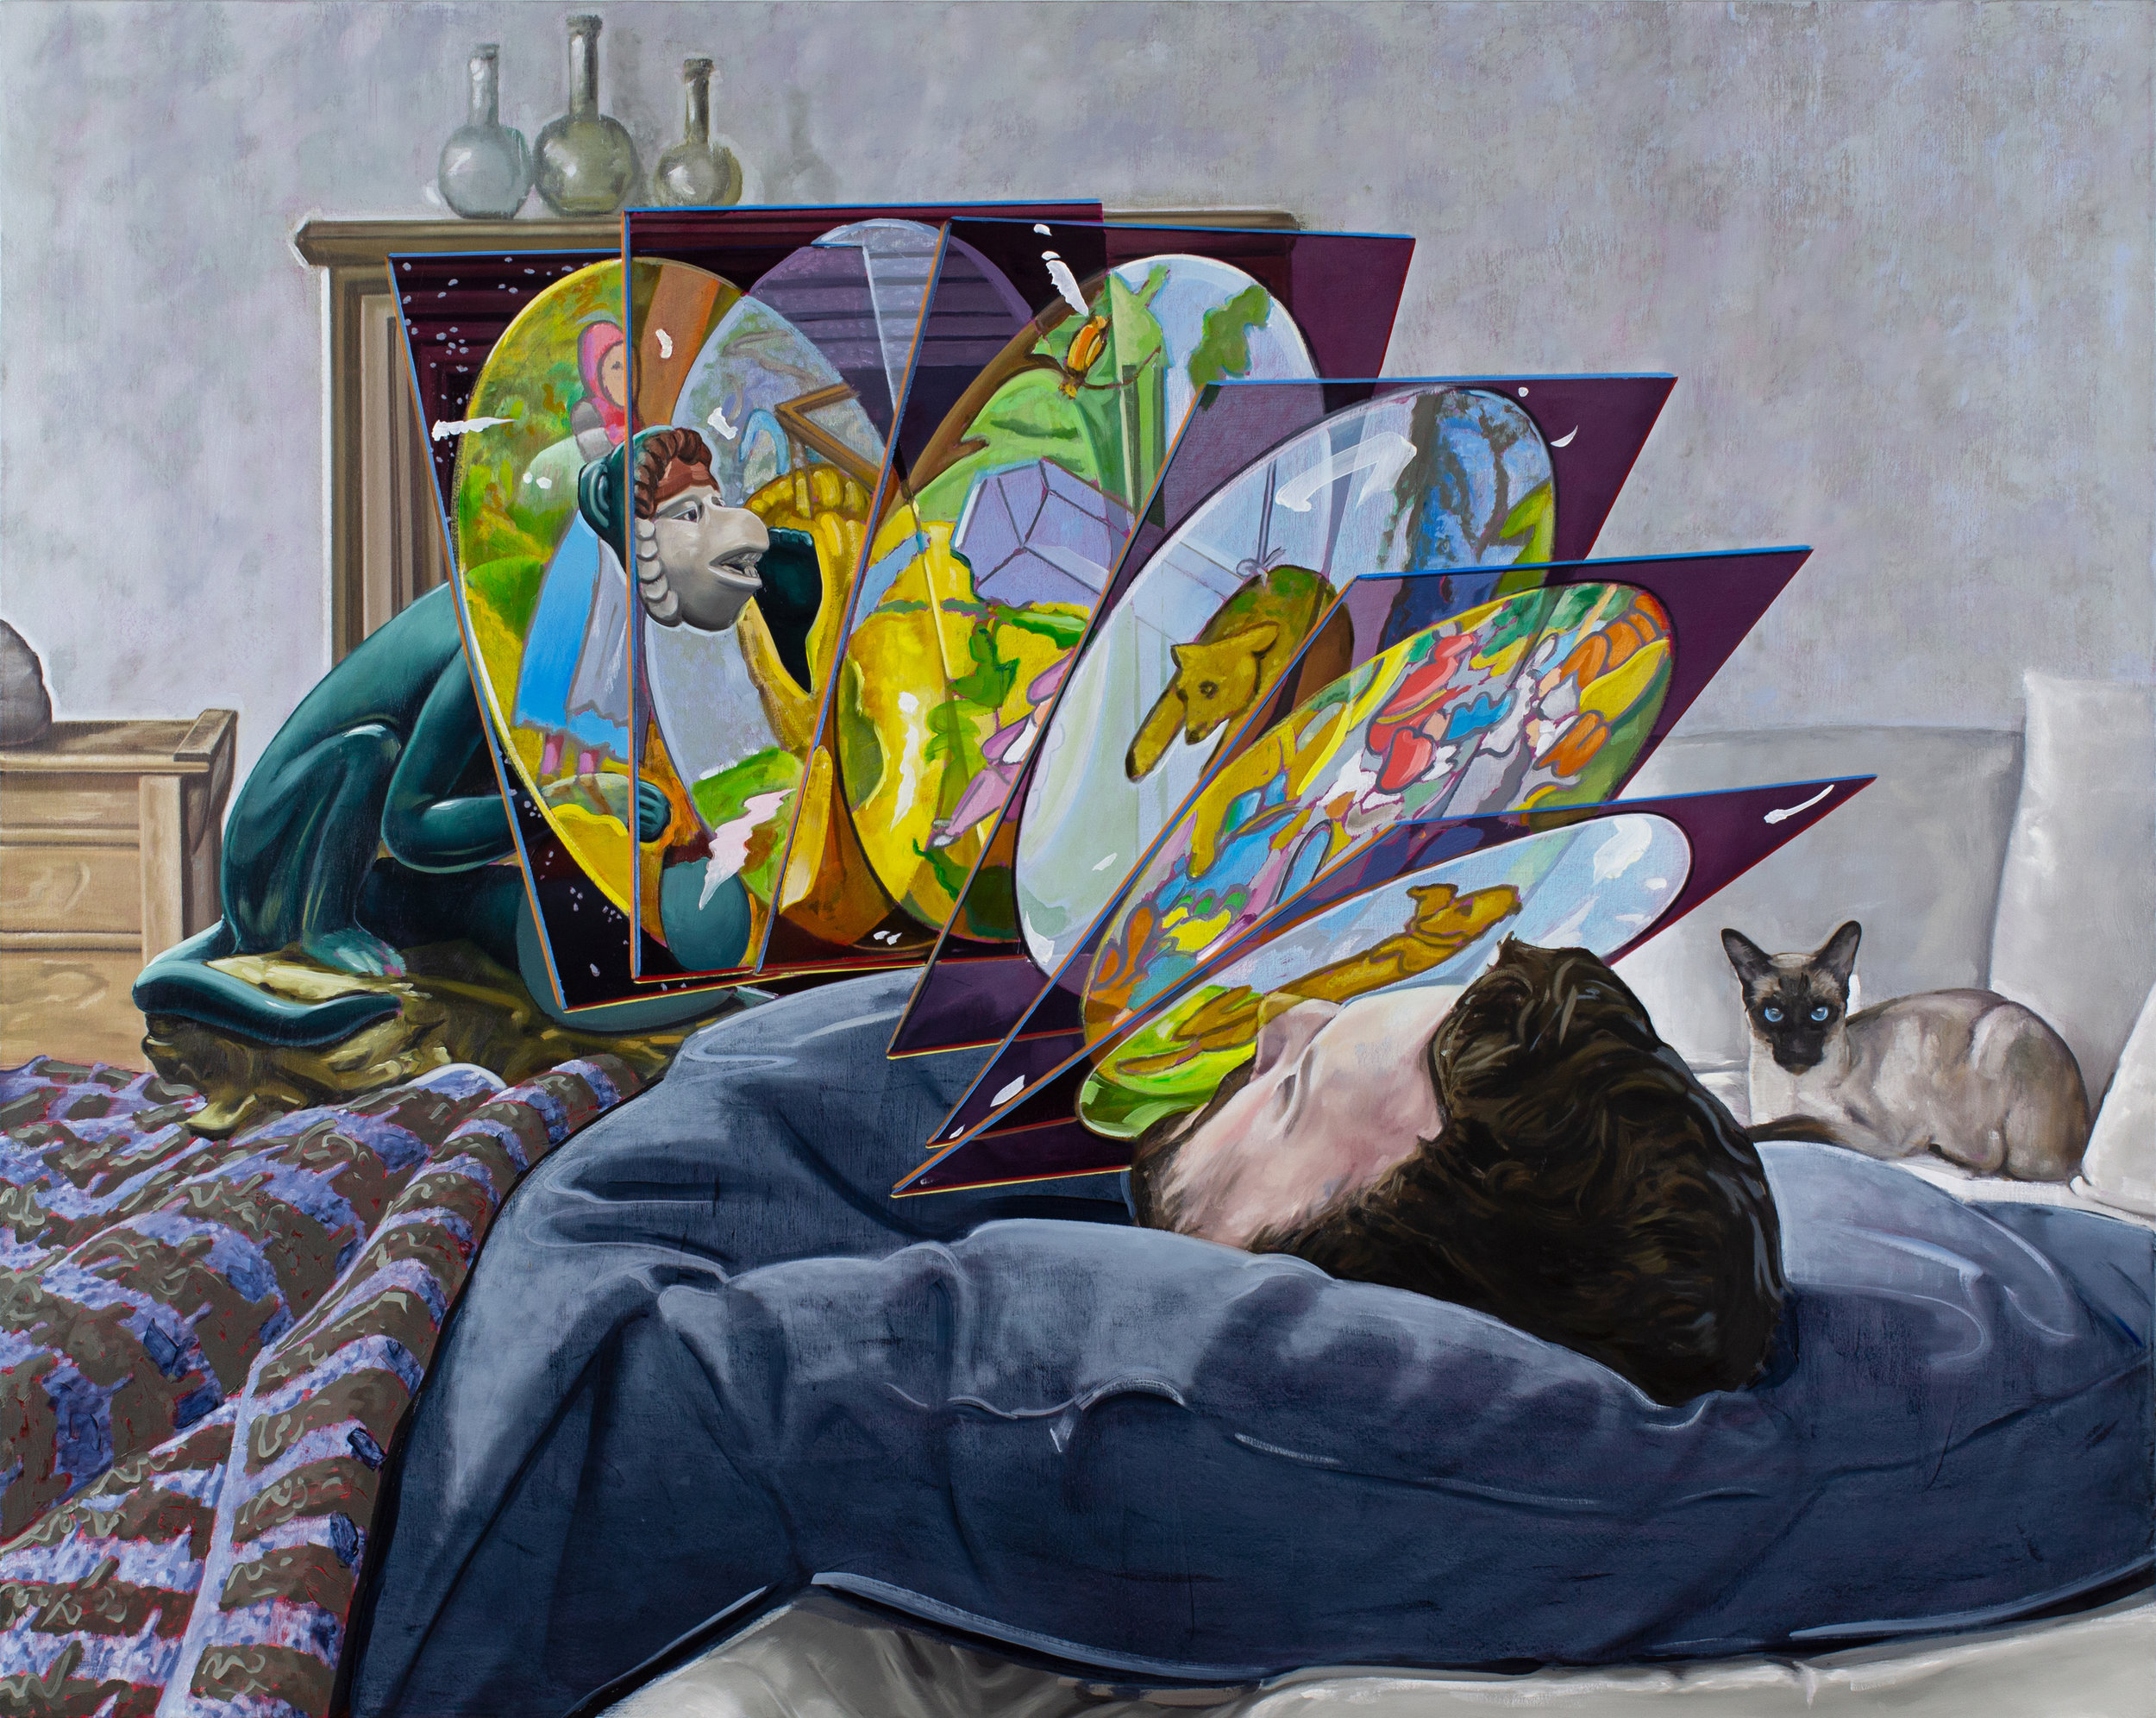 Self-portrait Sleeping,  2019. Oil on canvas, 60 x 48 inches